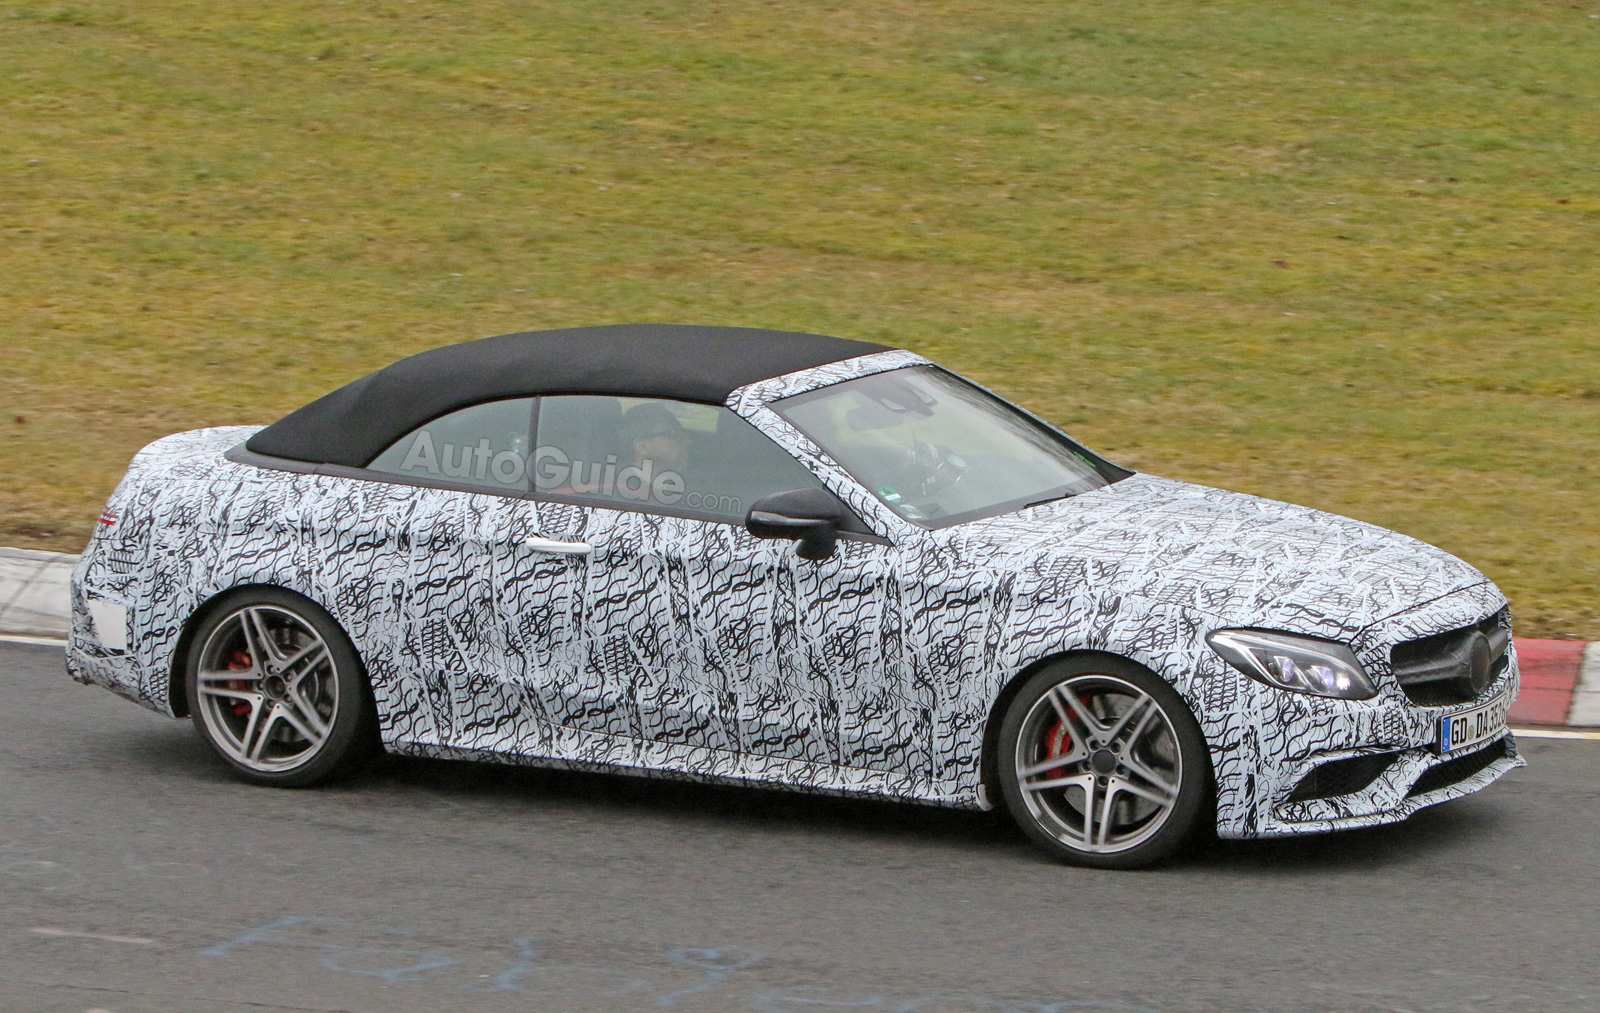 http://www.autoguide.com/blog/wp-content/gallery/mercedes-amg-c63-convertible-spy-photos-march-21-2016/mercedes-amg-c63-convertible-spy-photos-05.jpg